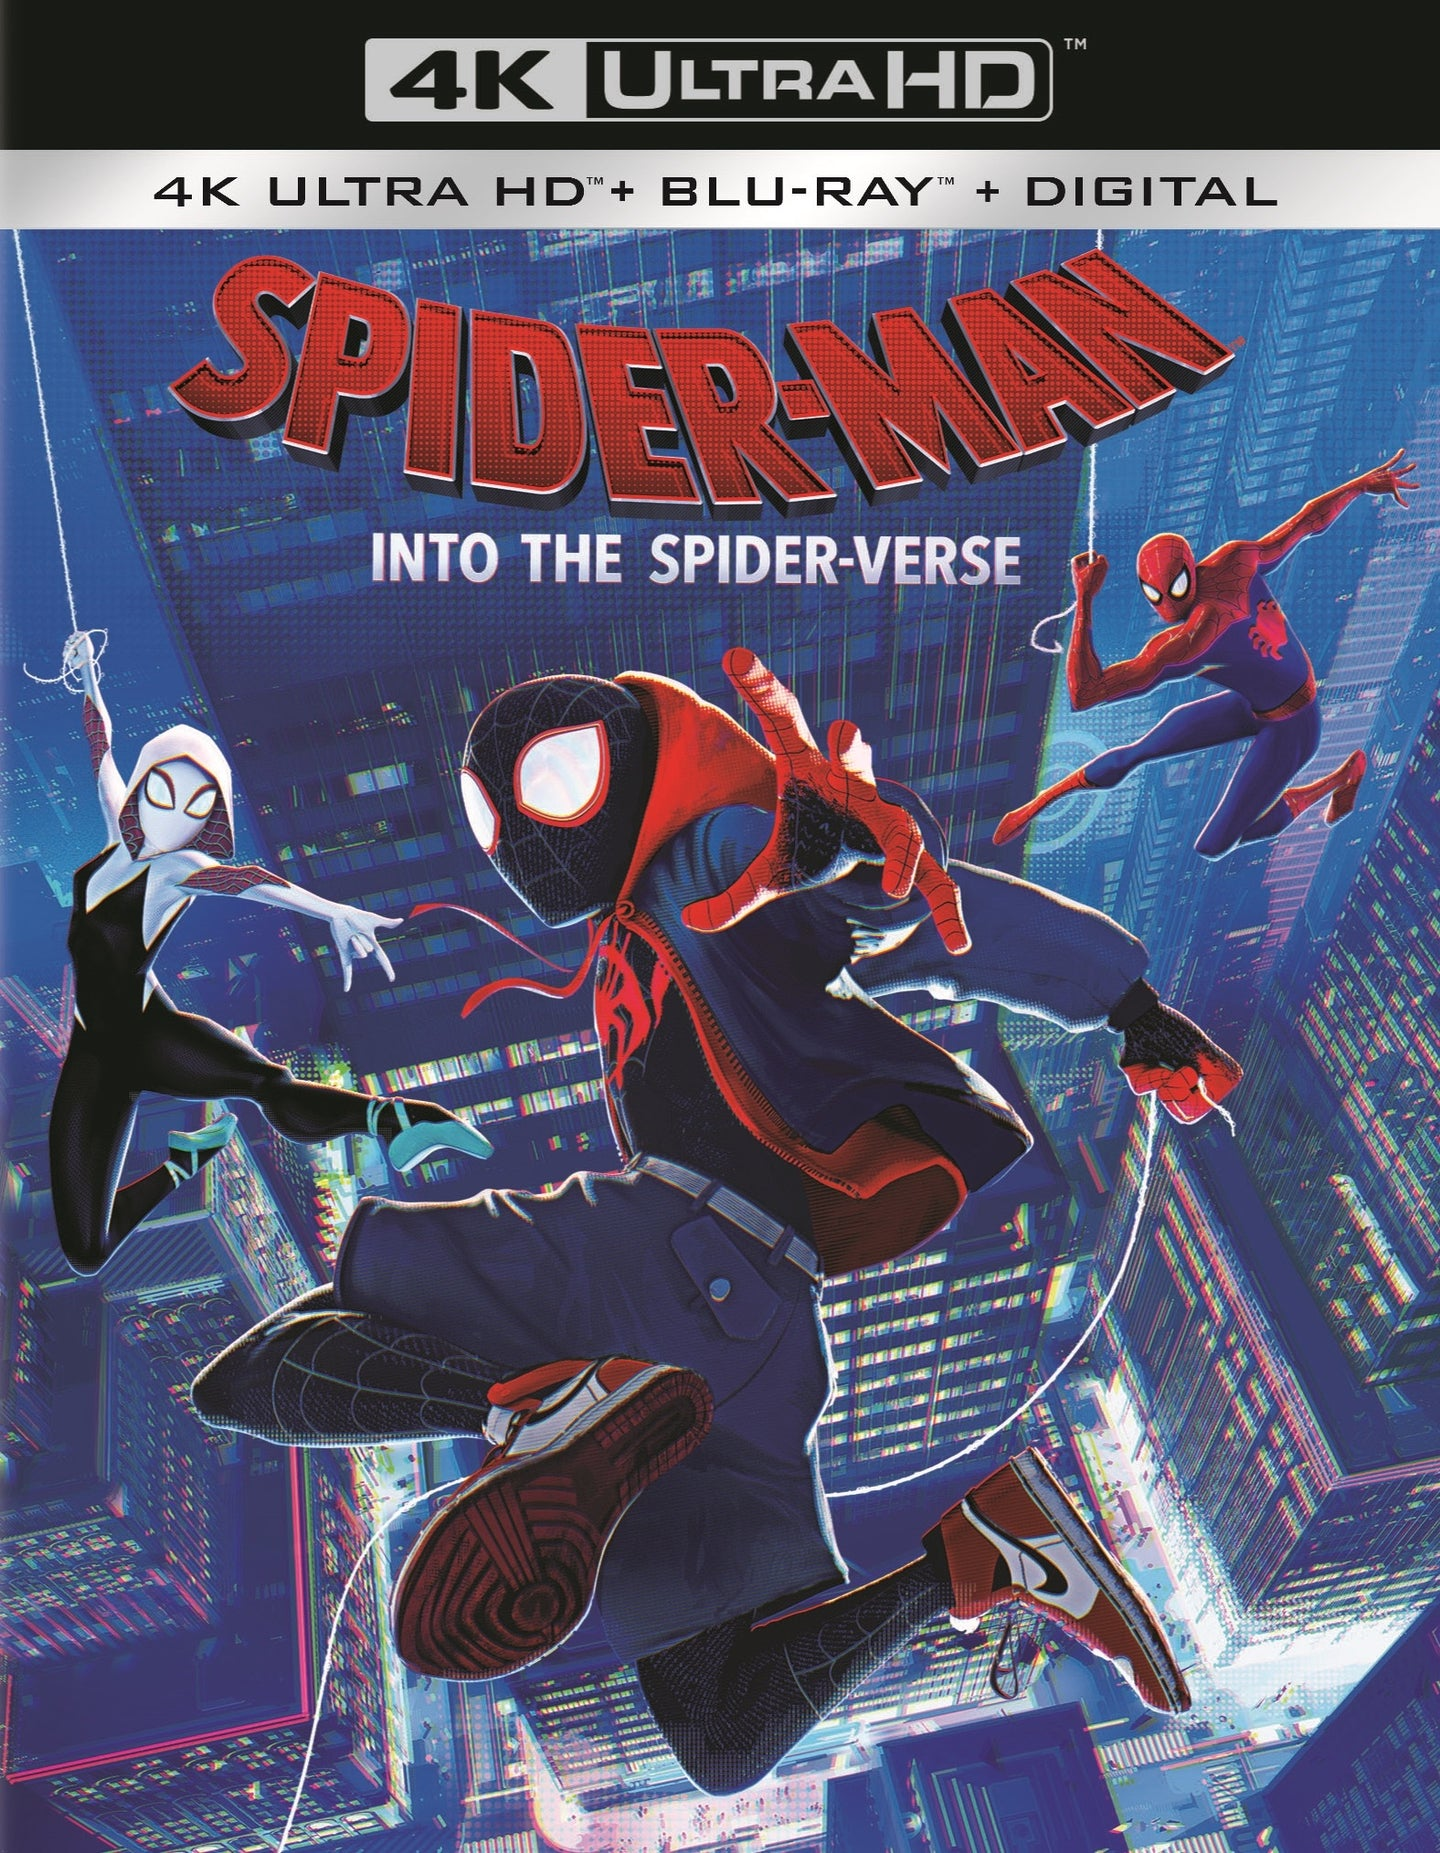 Spider-Man Into The Spider-Verse (2018) Vudu or Movies Anywhere 4K code